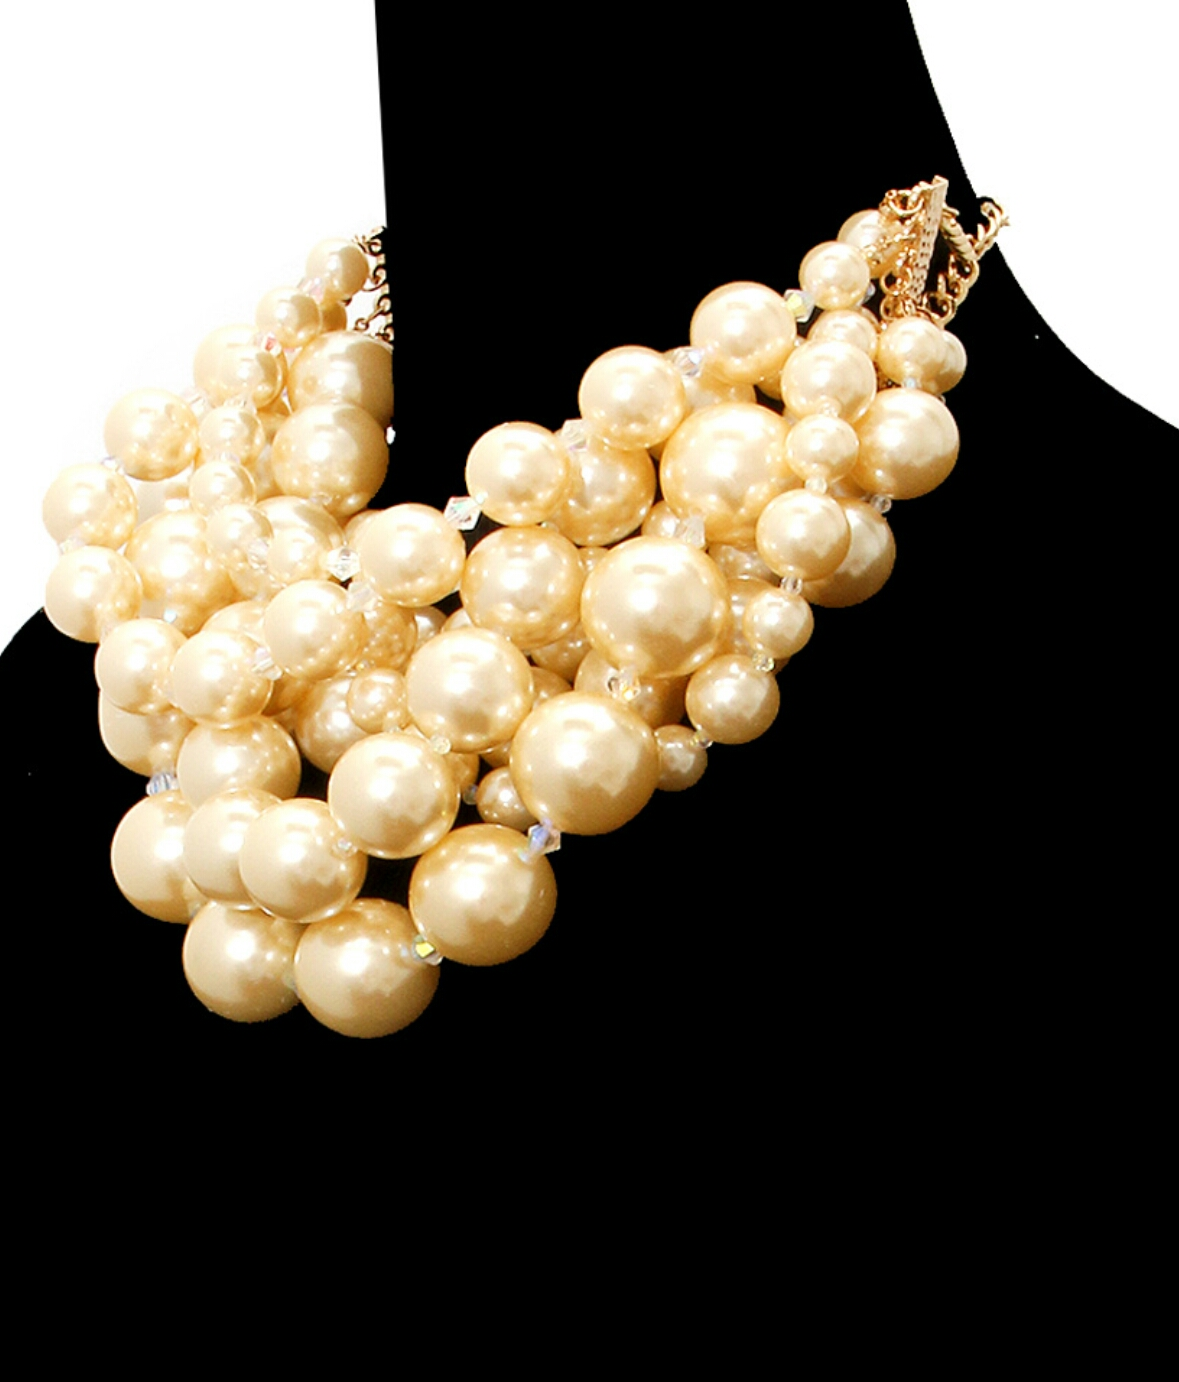 New Arrival  Champagne tone pearls chunky layered necklace set with lobster clasp closure